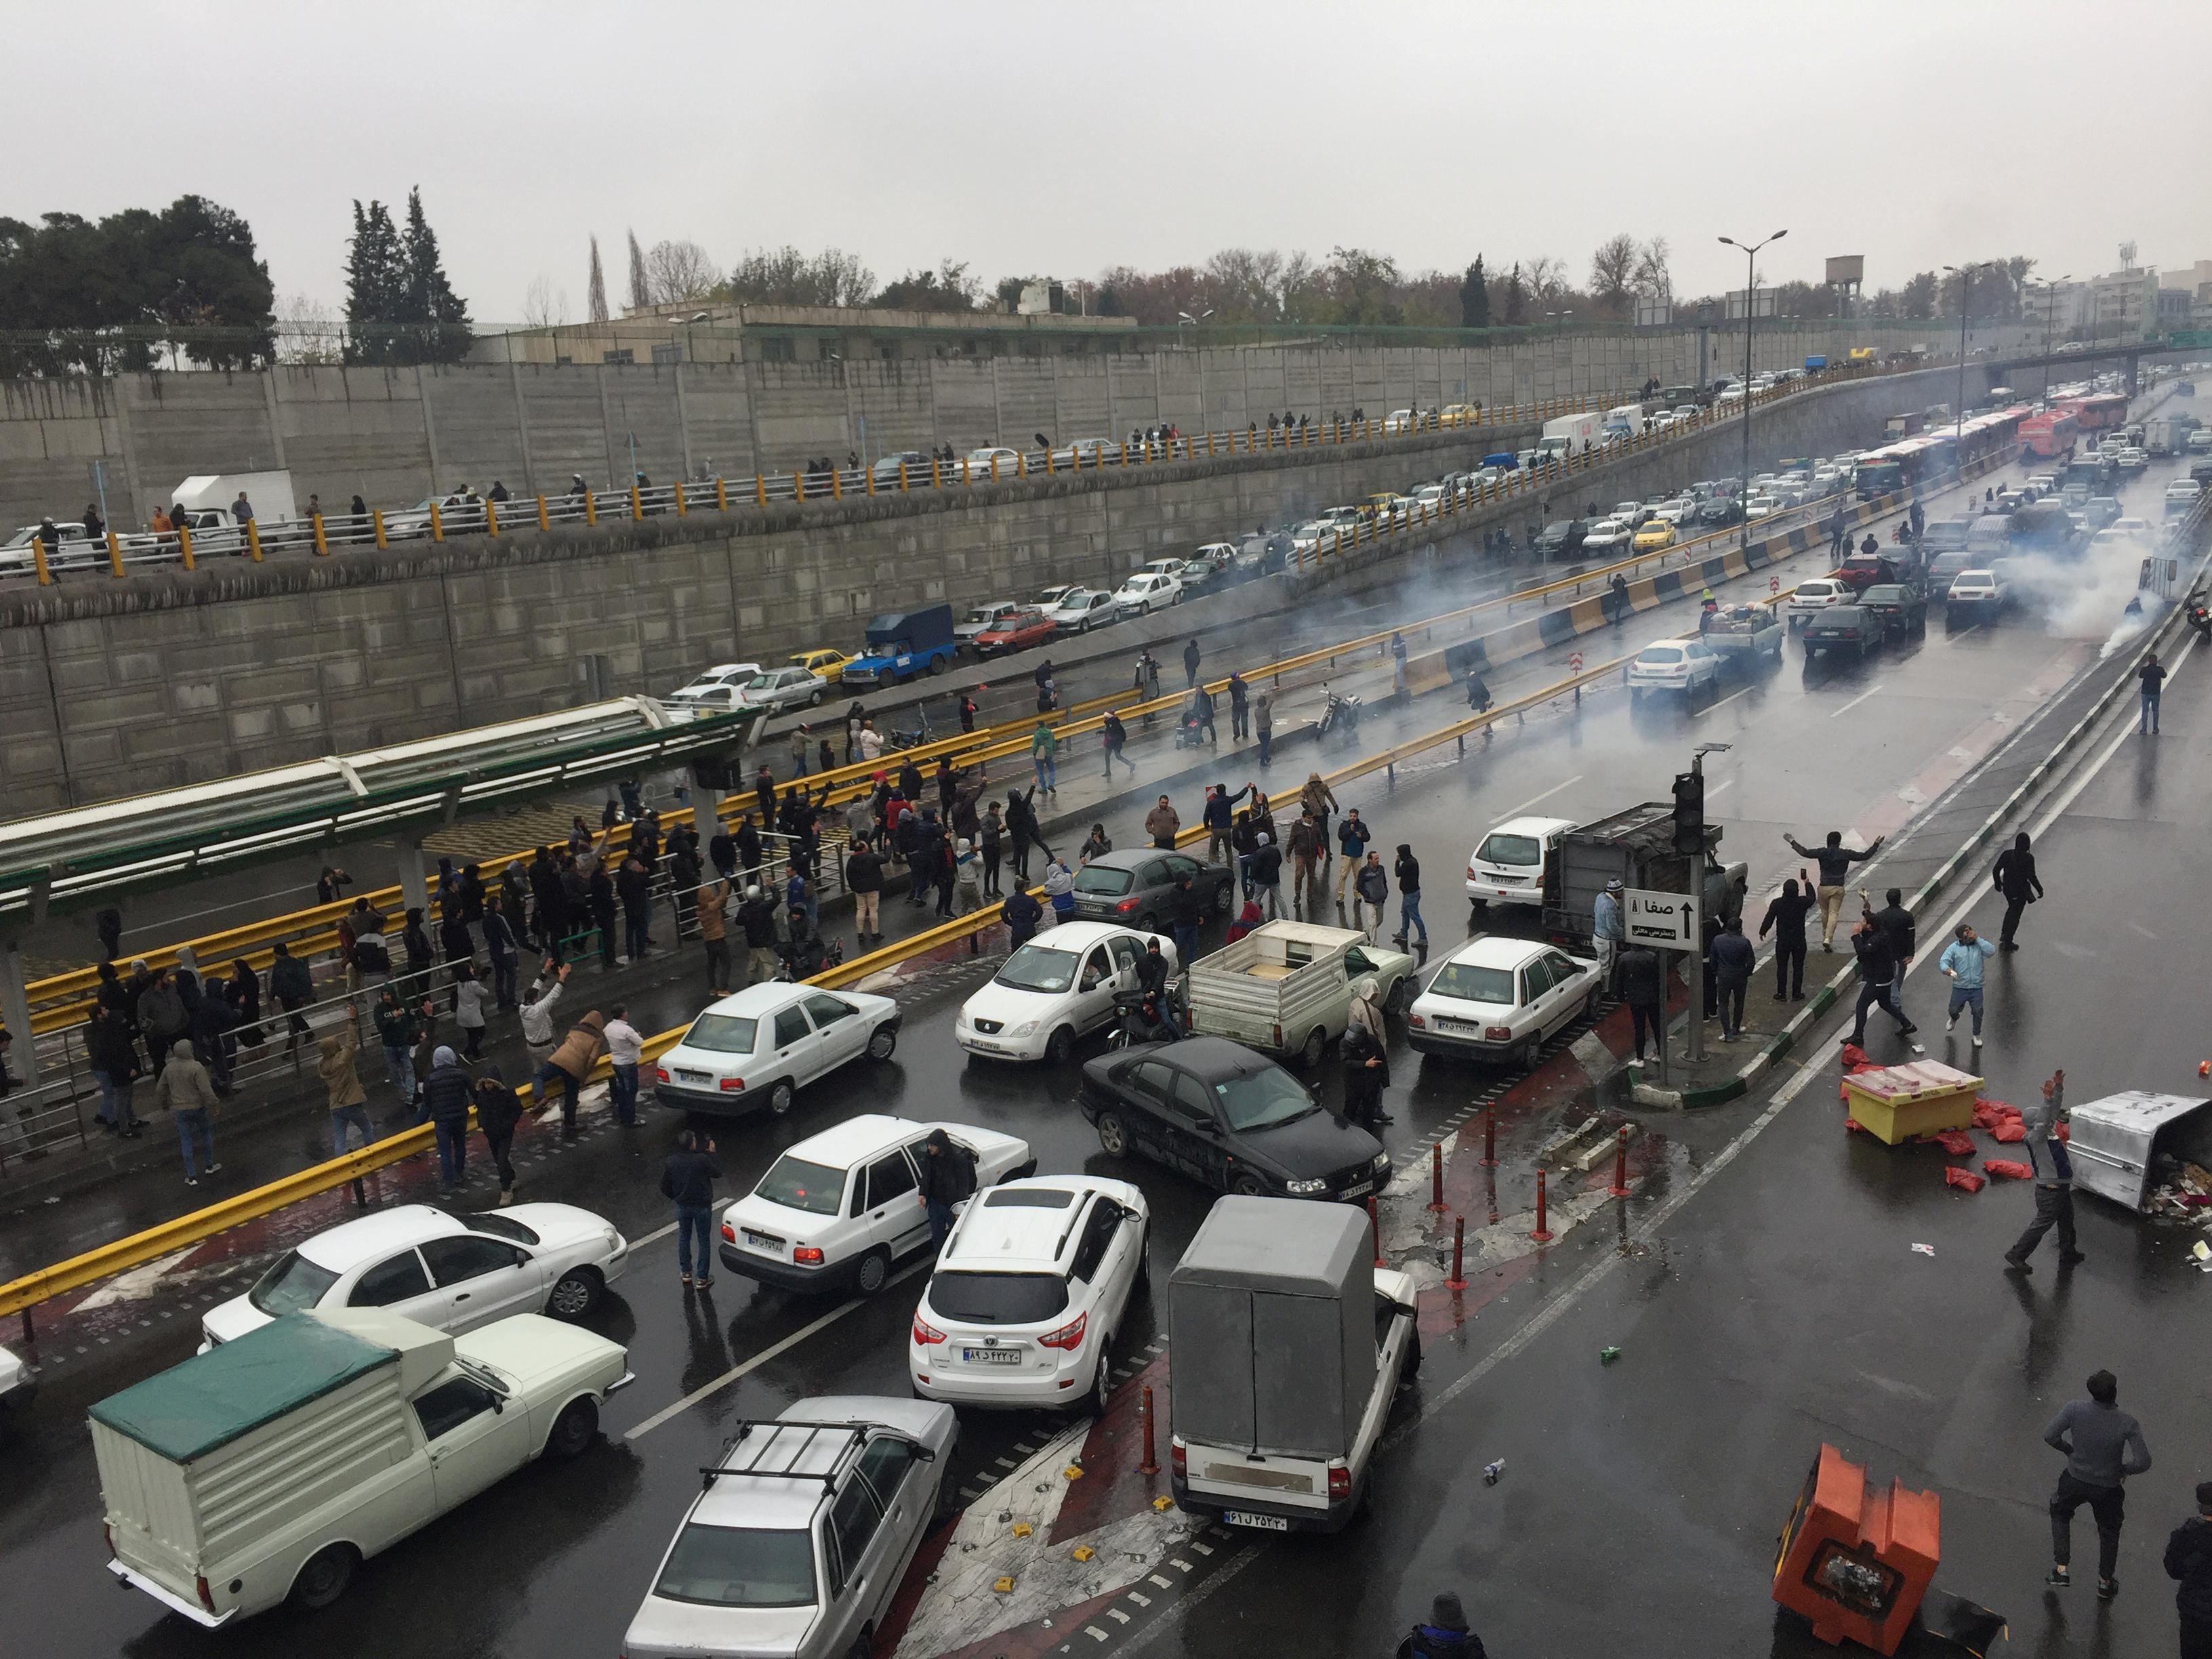 Iran's Guards warn of 'decisive' action if unrest continues